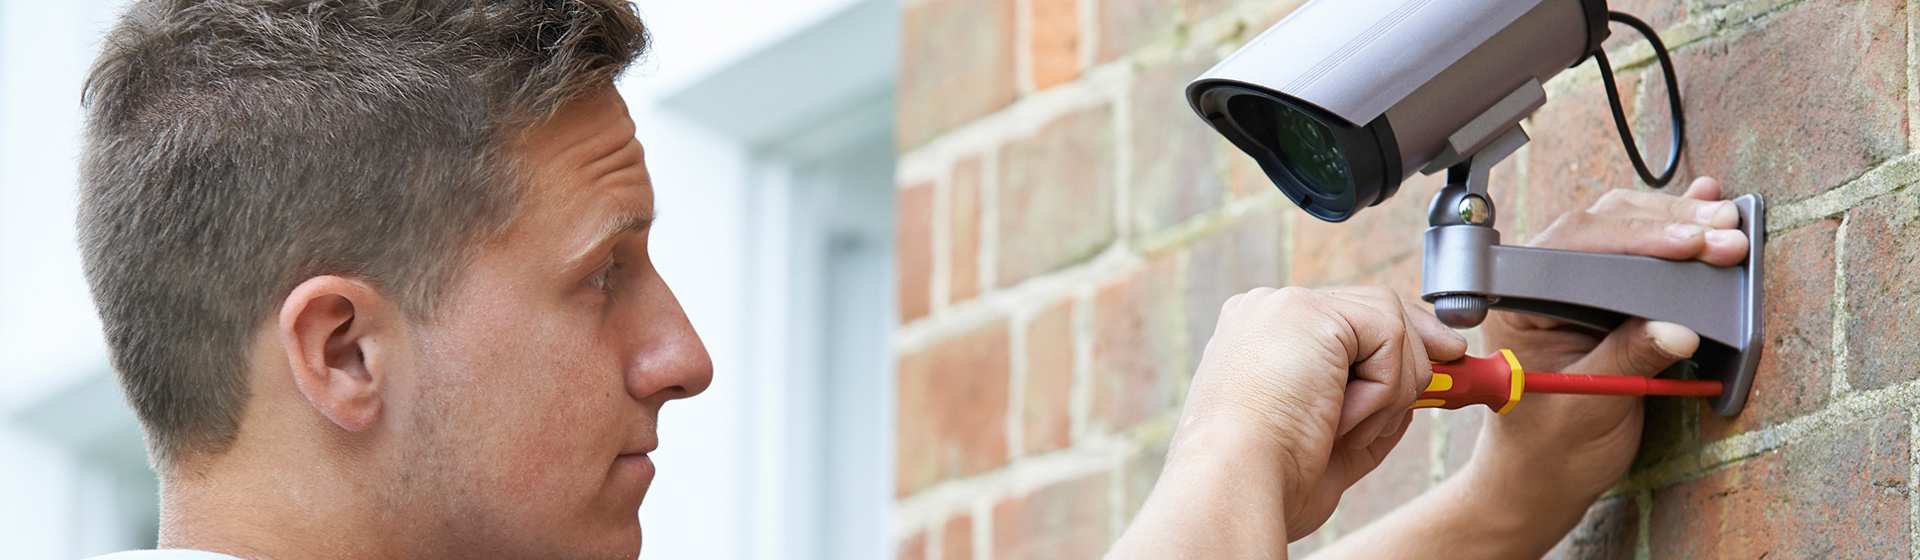 Local CCTV Installation | Tampa Bay | High Definition Audio Video, Inc.